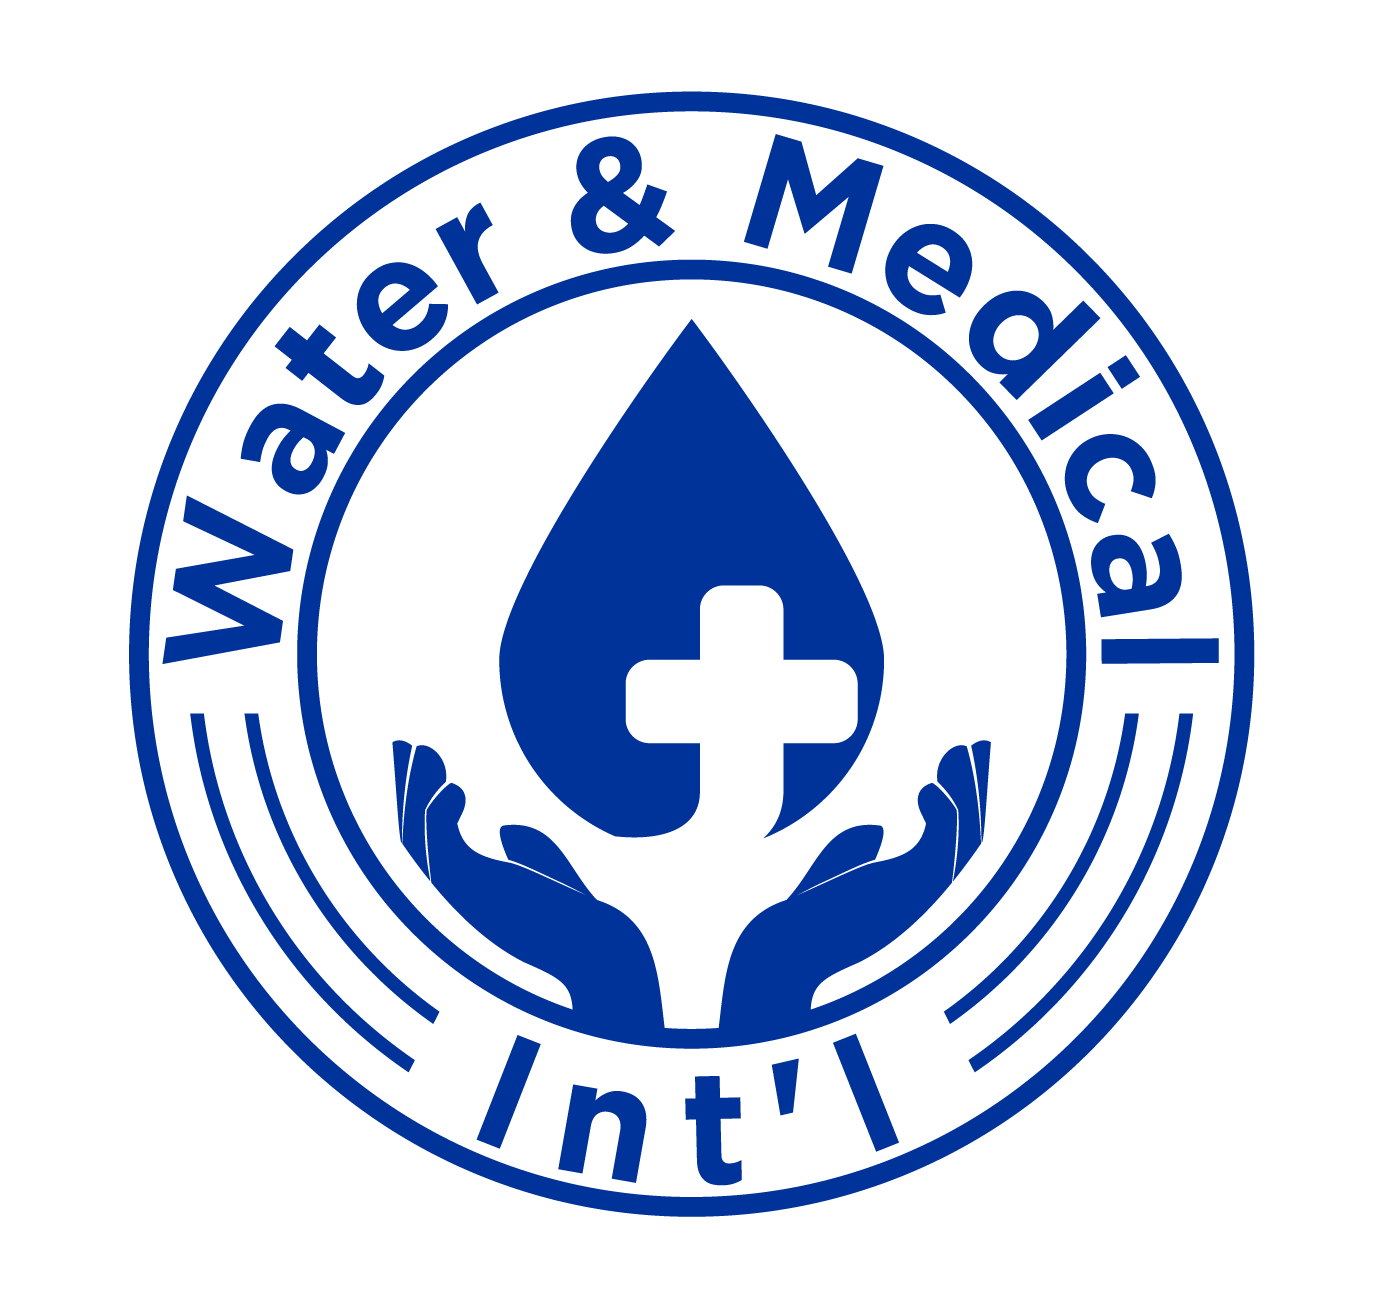 Water & Medical Intl